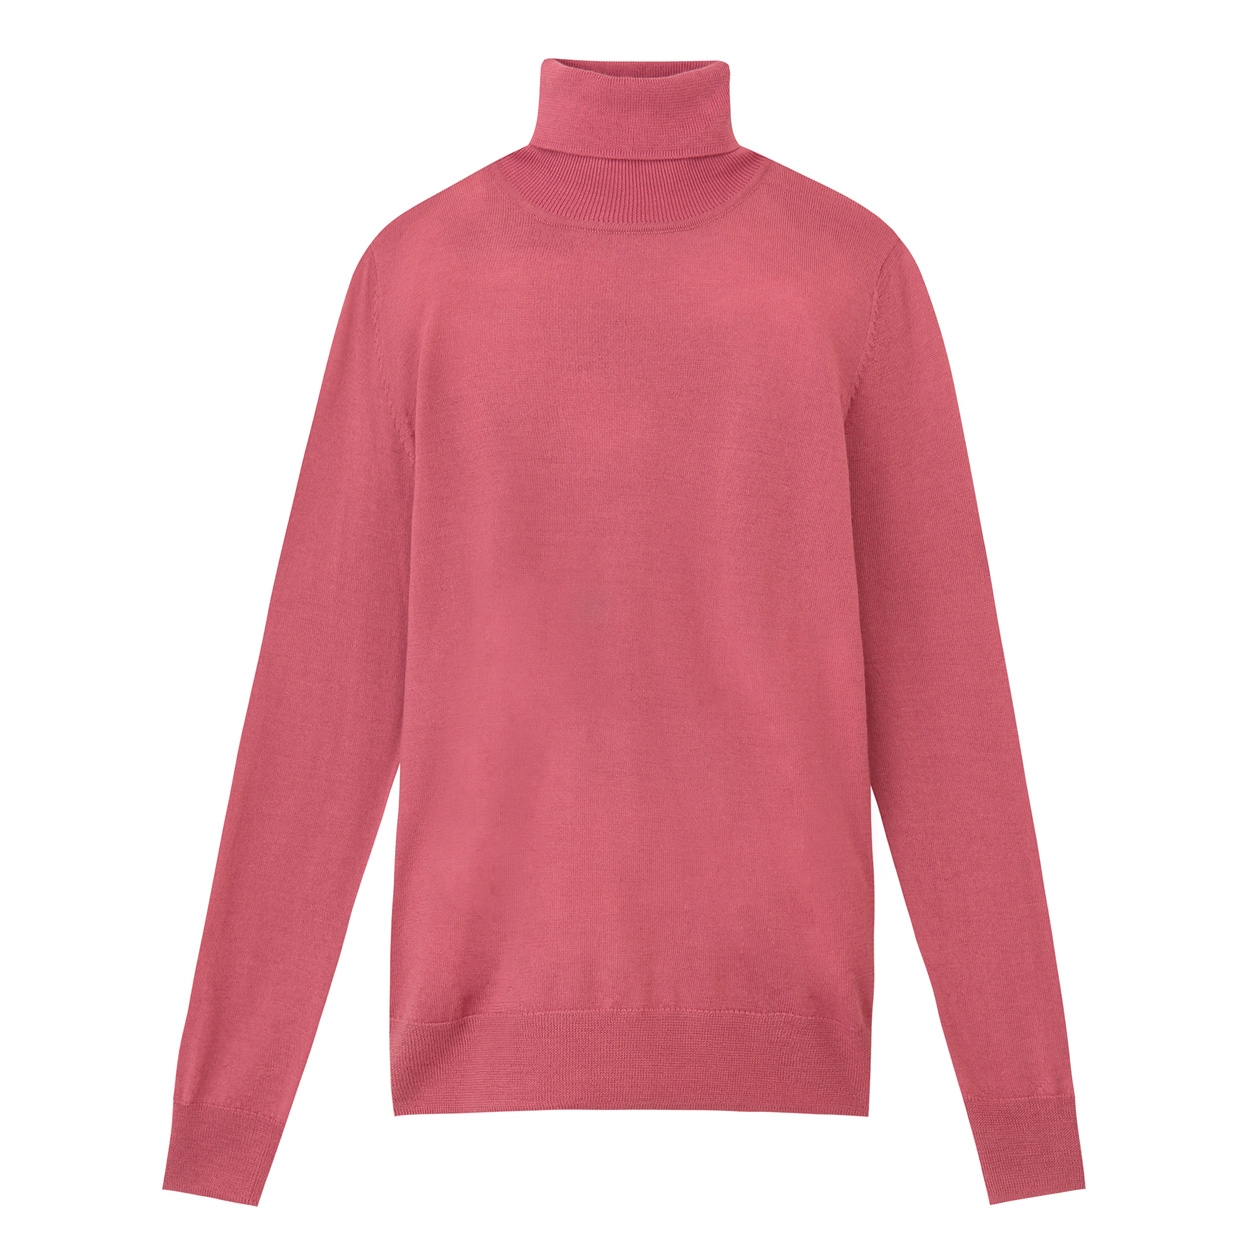 MUJI women's high neck sweater without neck tingling